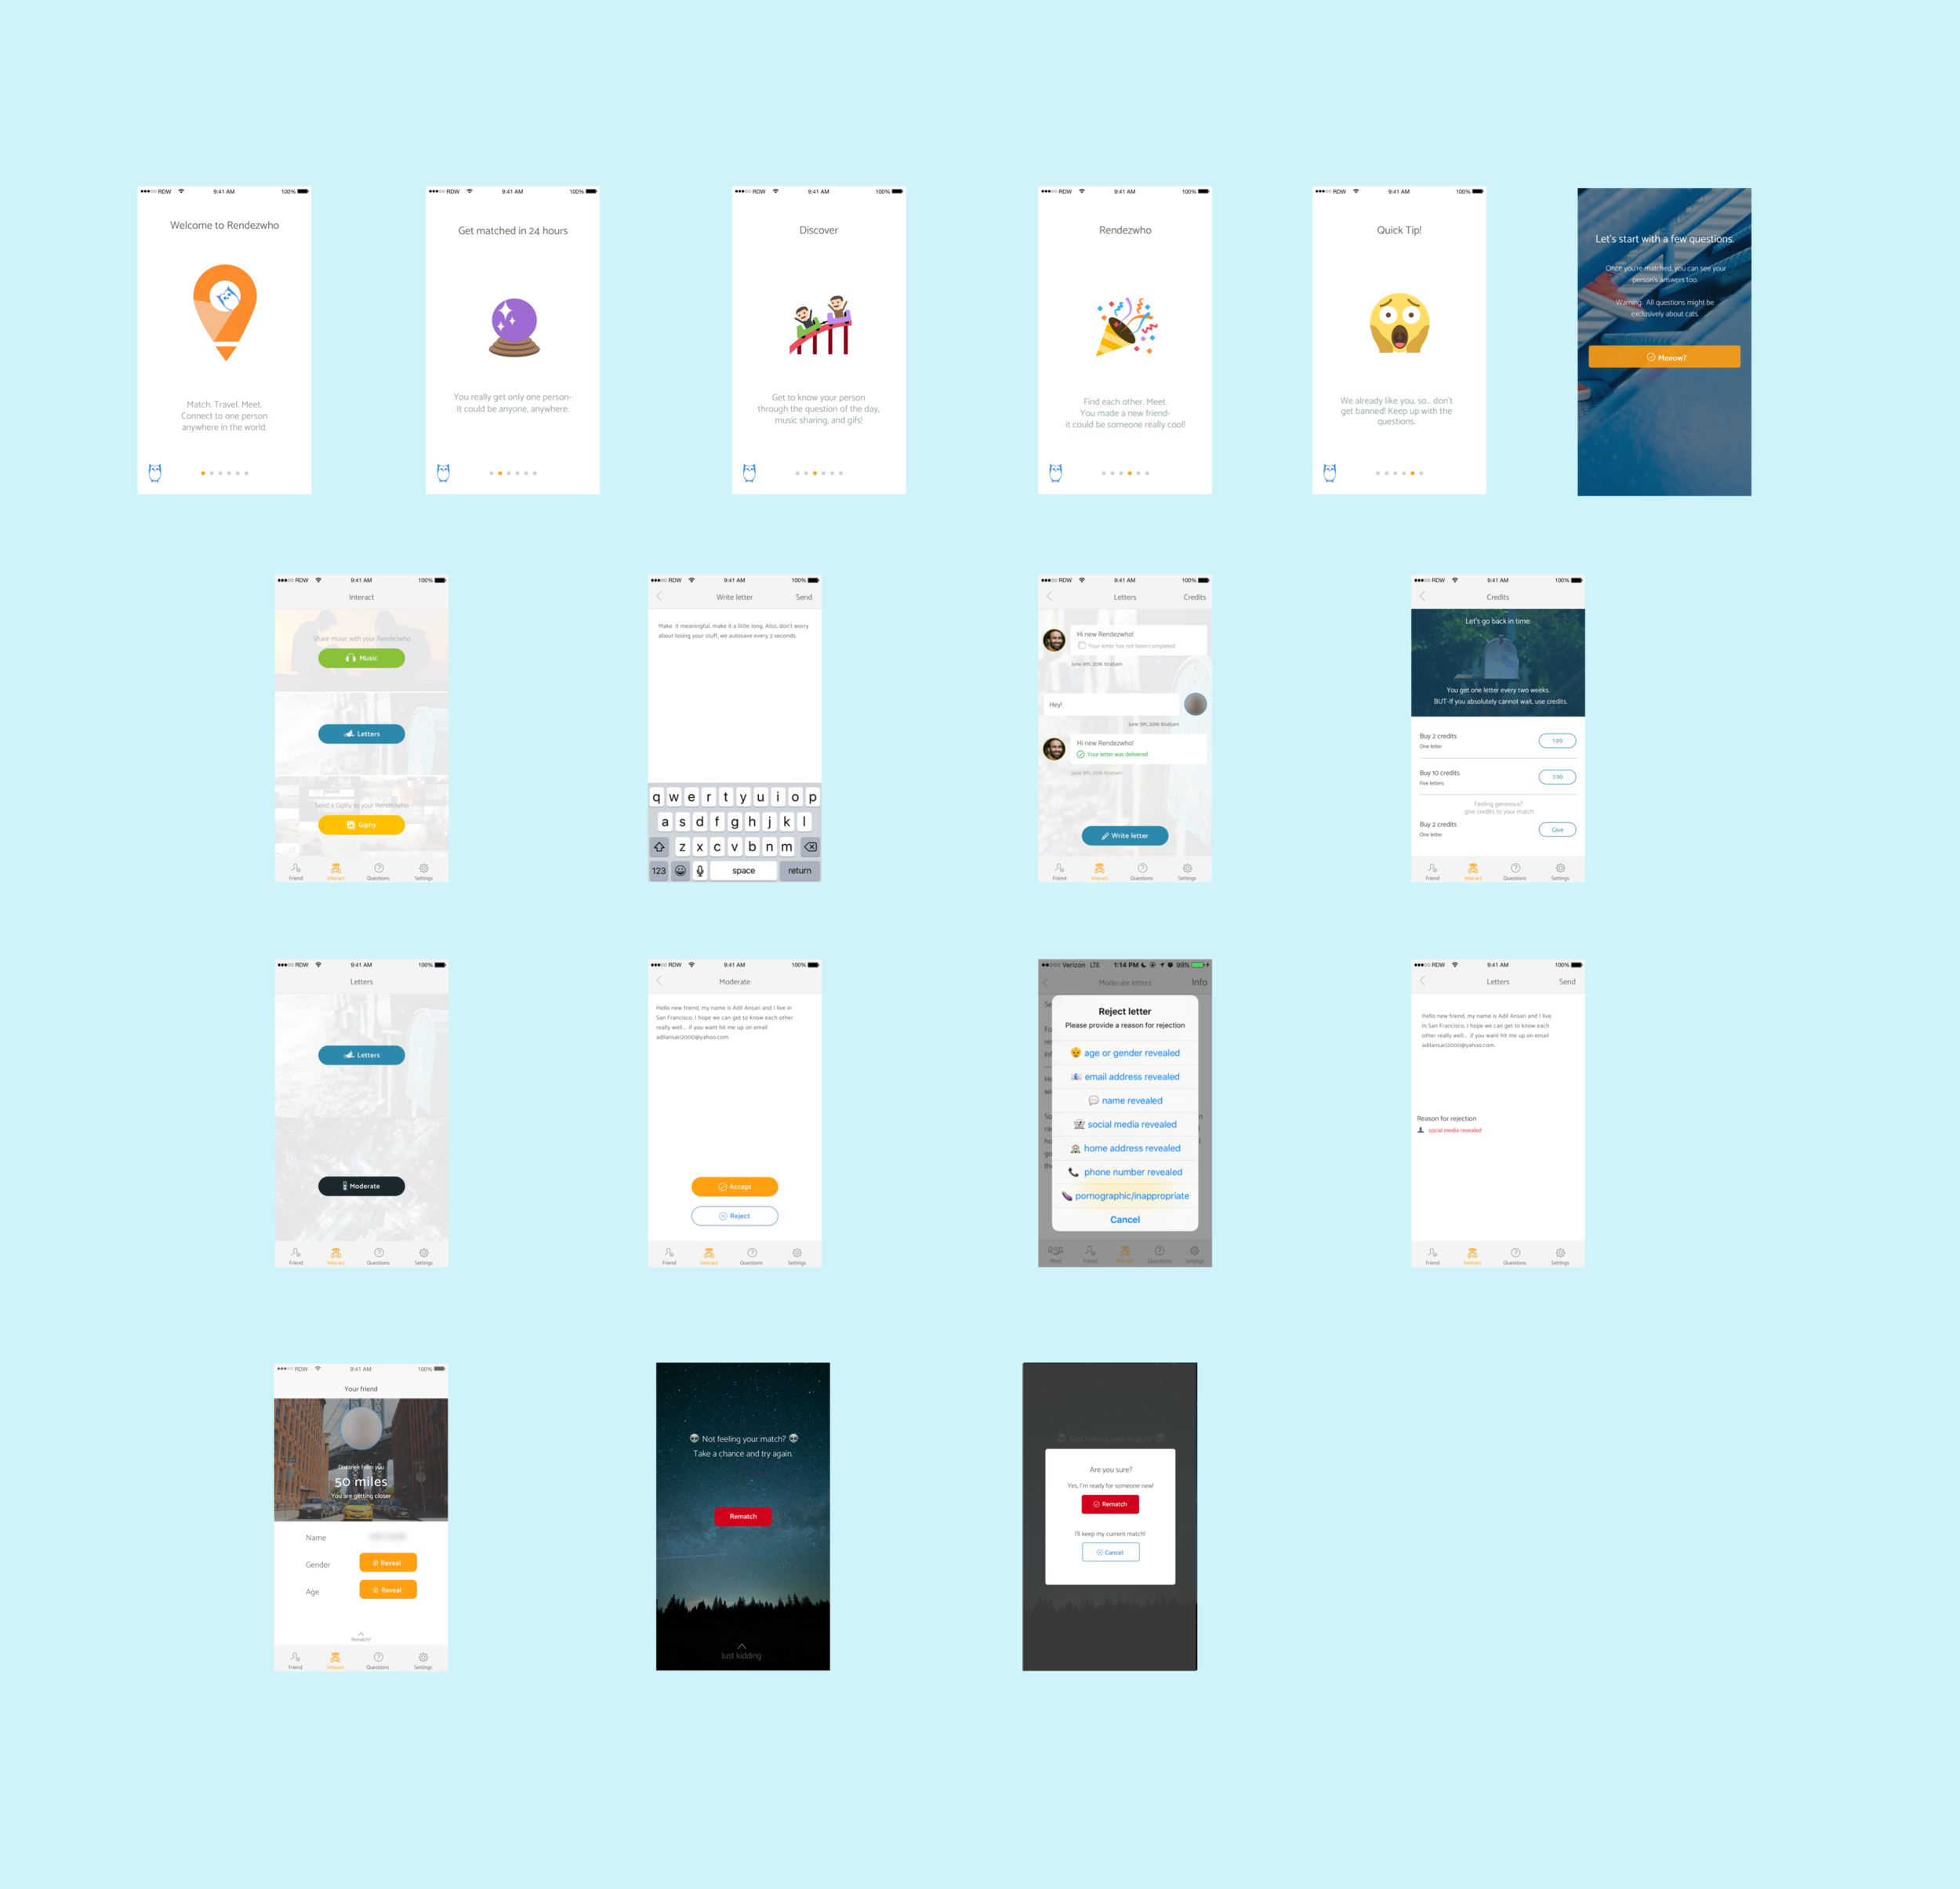 Design - We asked our users through email interviews, as well as conducted usability testing, along with our existing metrics in mixpanel and fabric to decide on how the new features would live within the app.